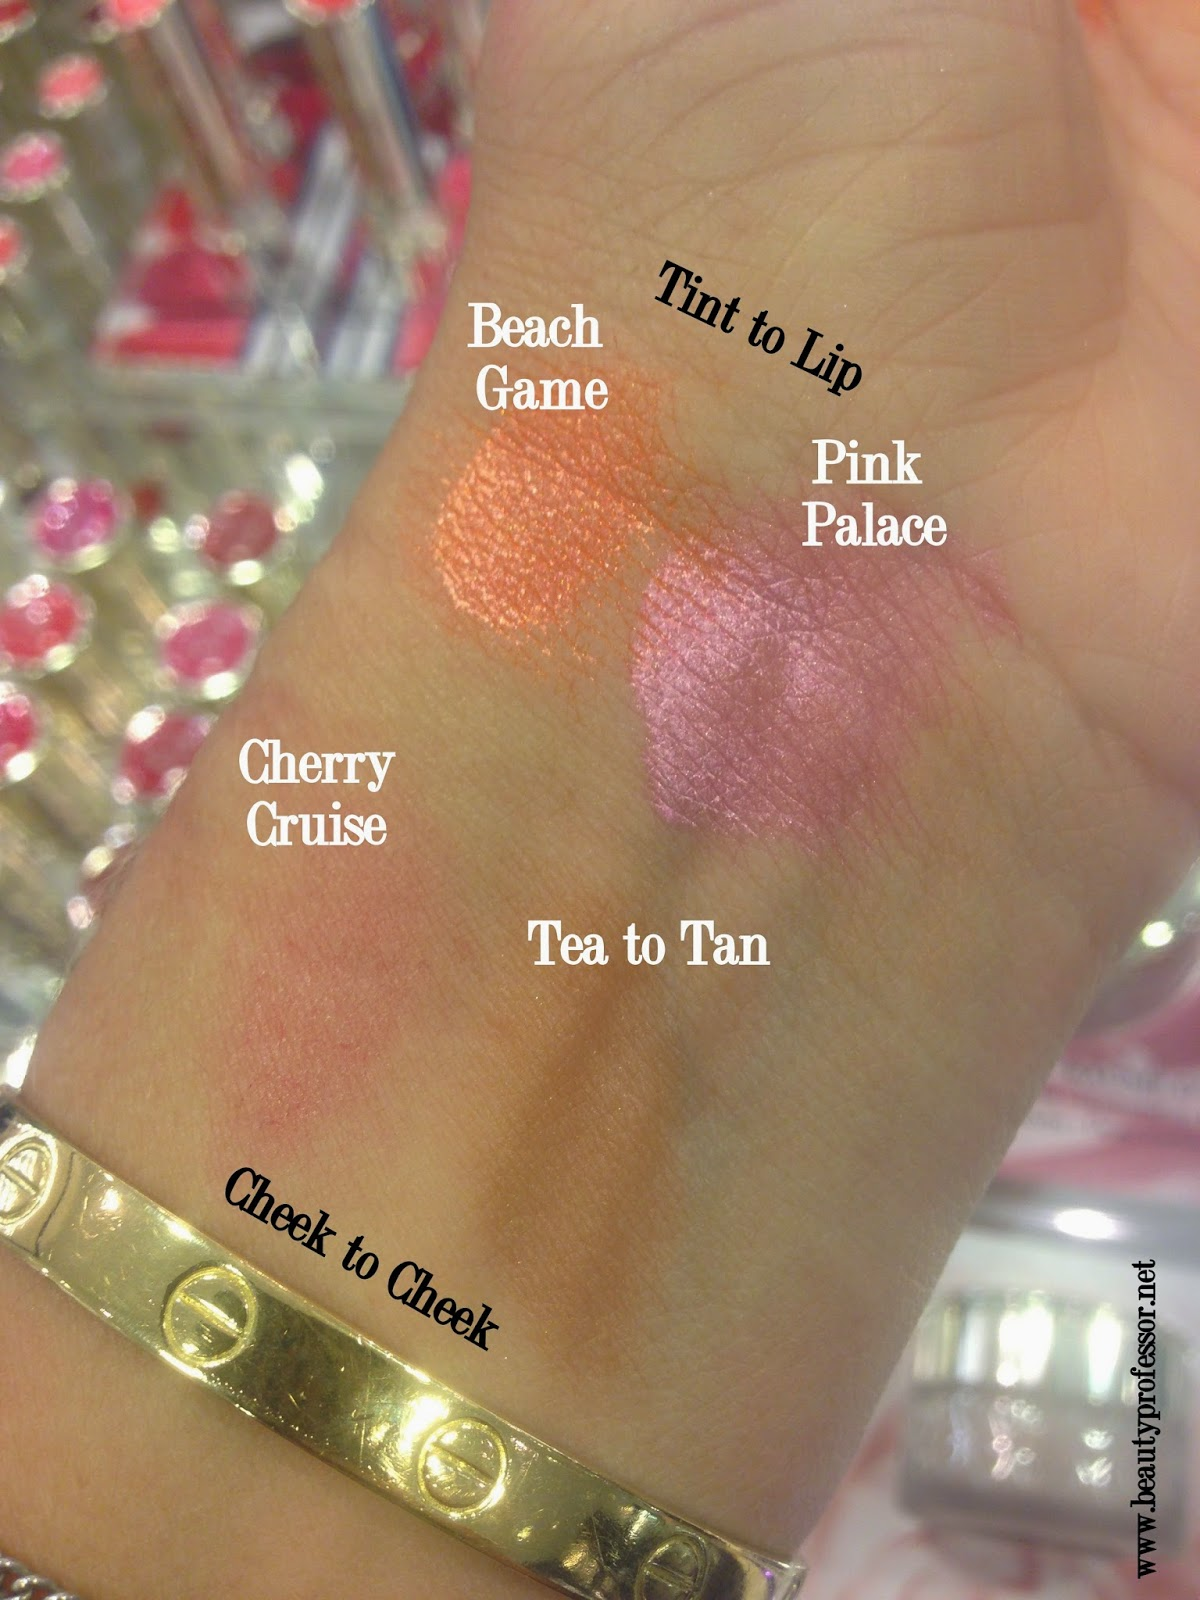 By terry french rivera swatches